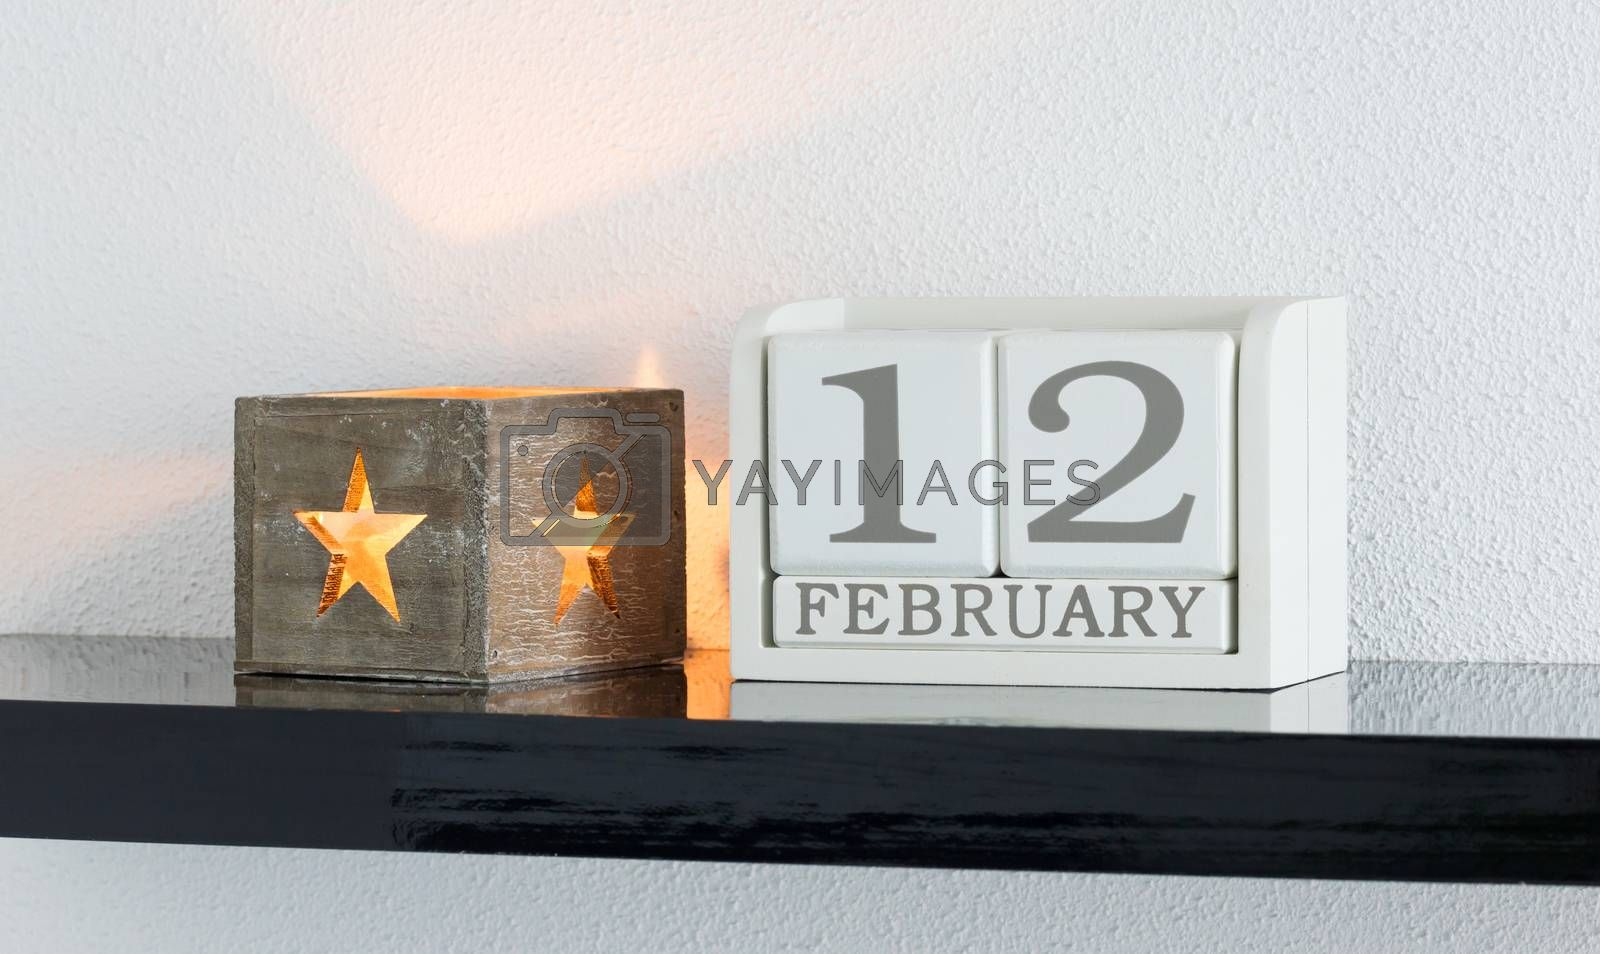 White block calendar present date 12 and month February by michaklootwijk